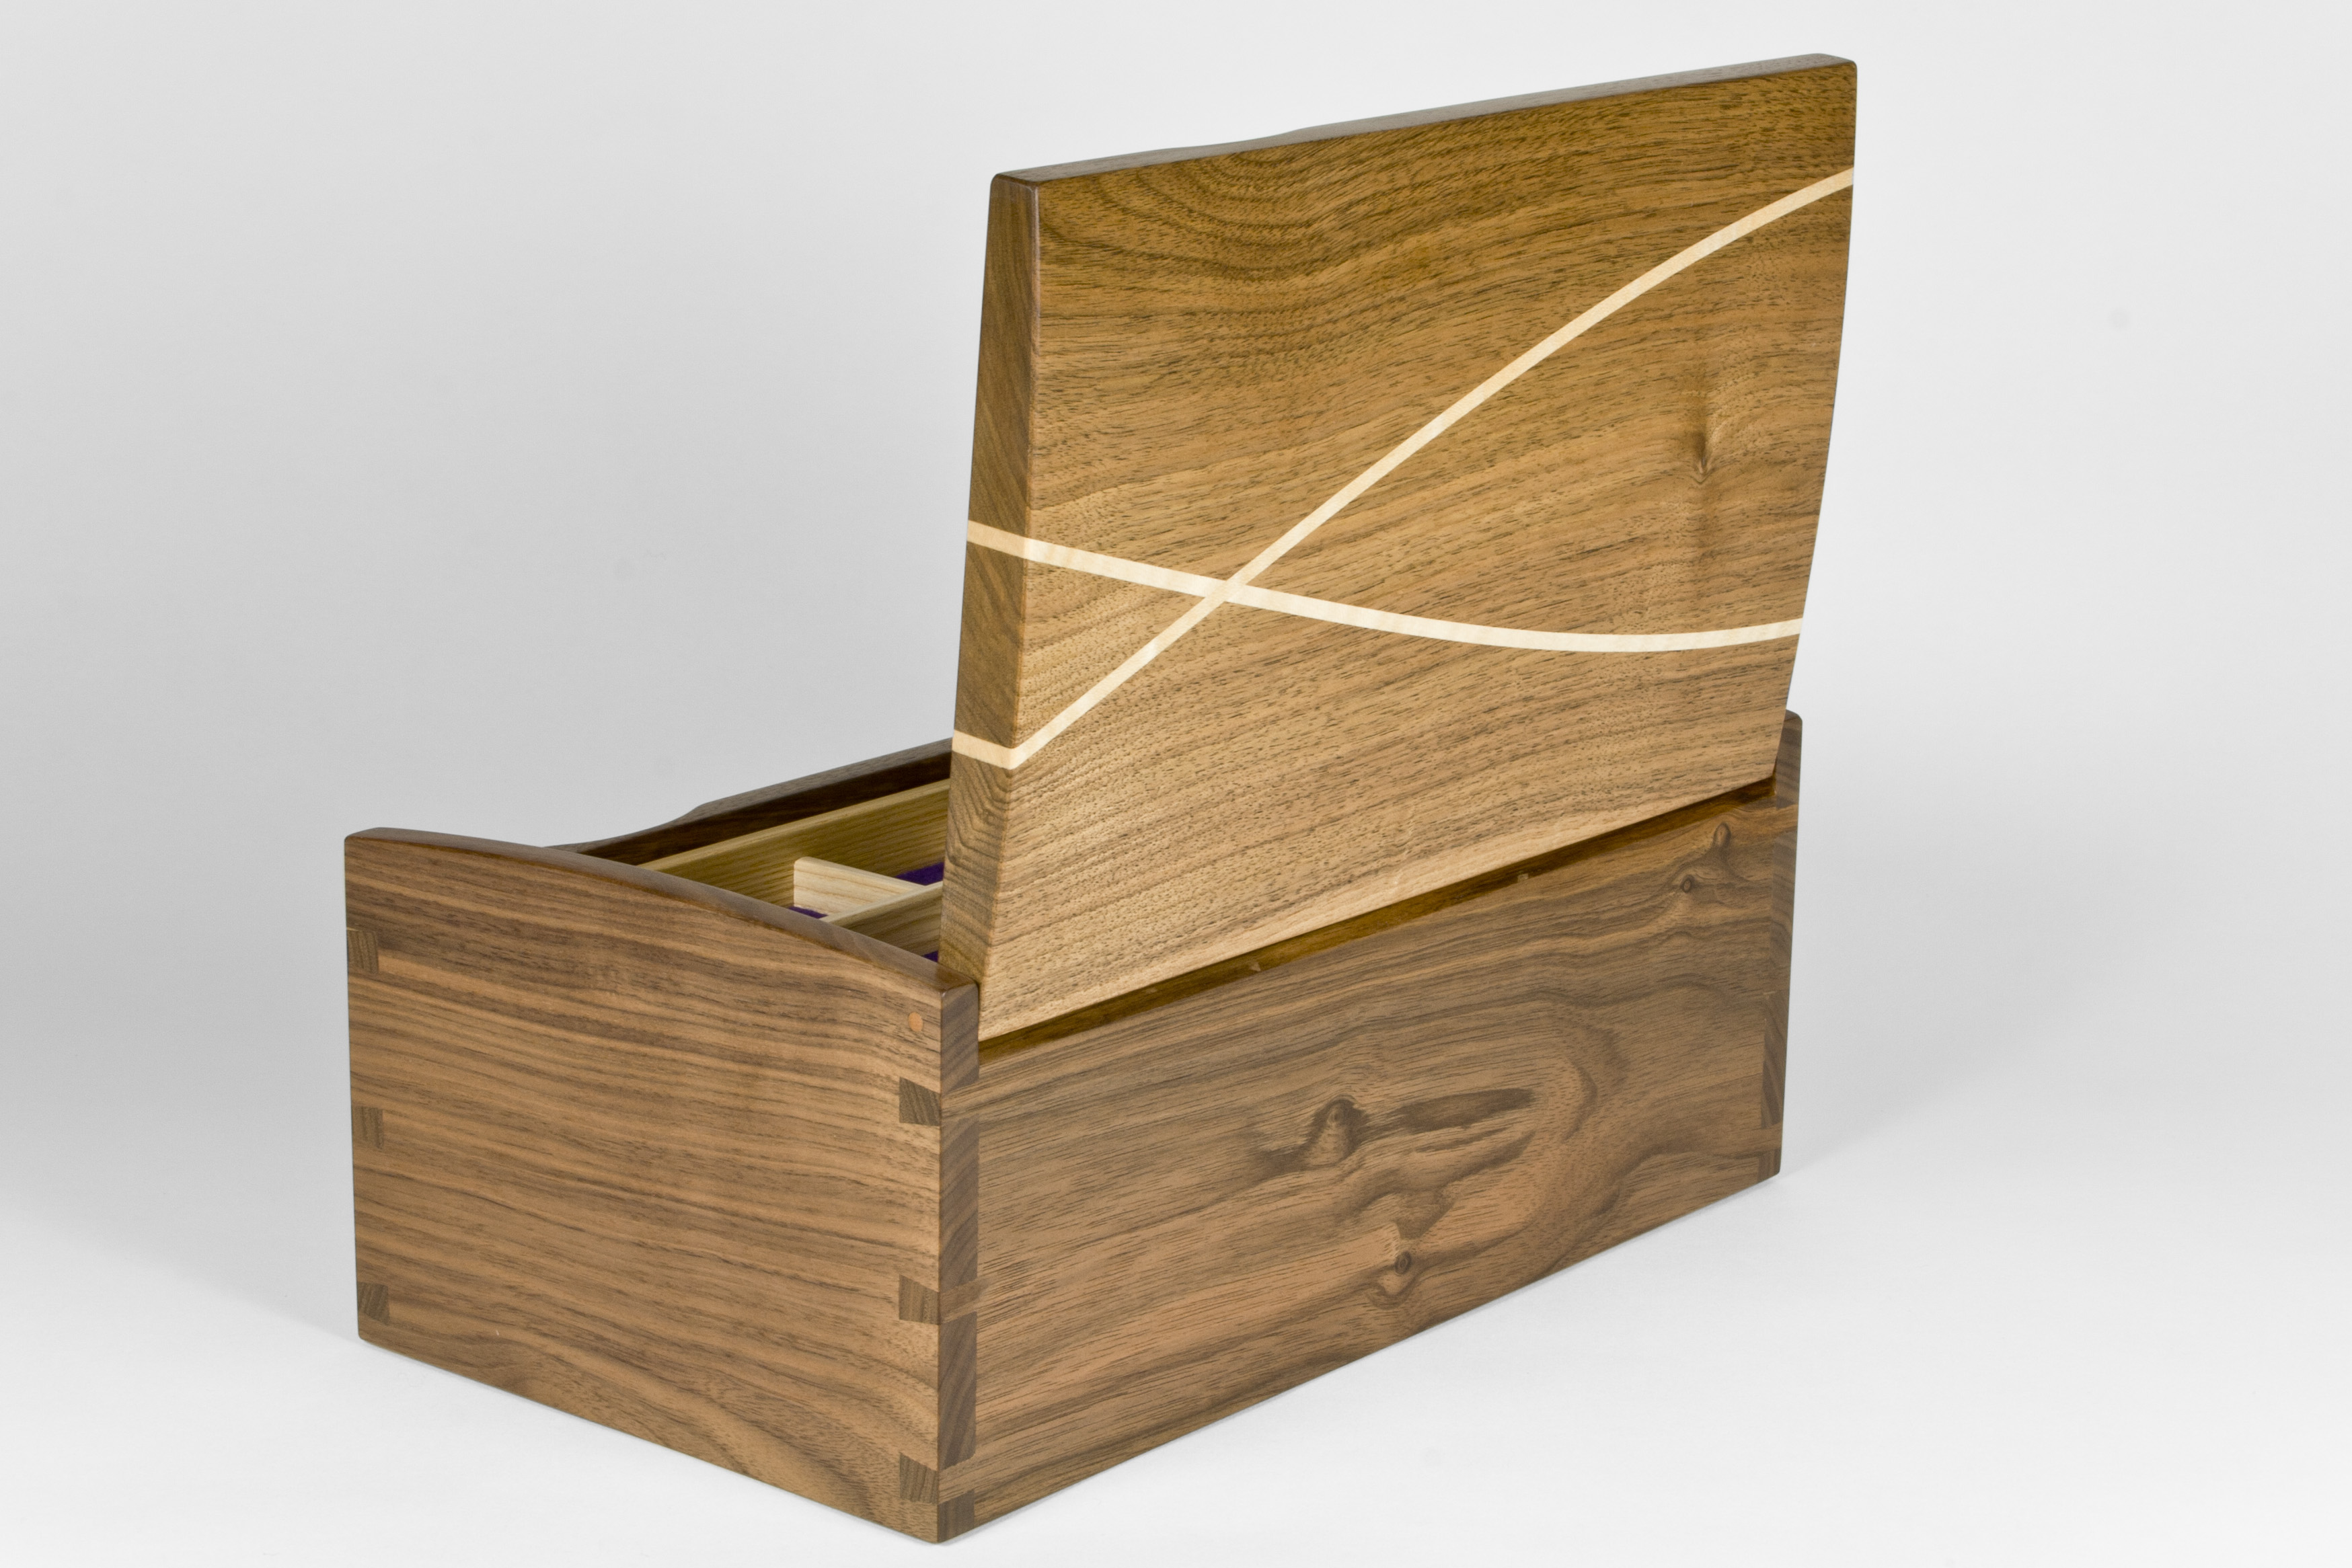 Inlays in jewellery box lid